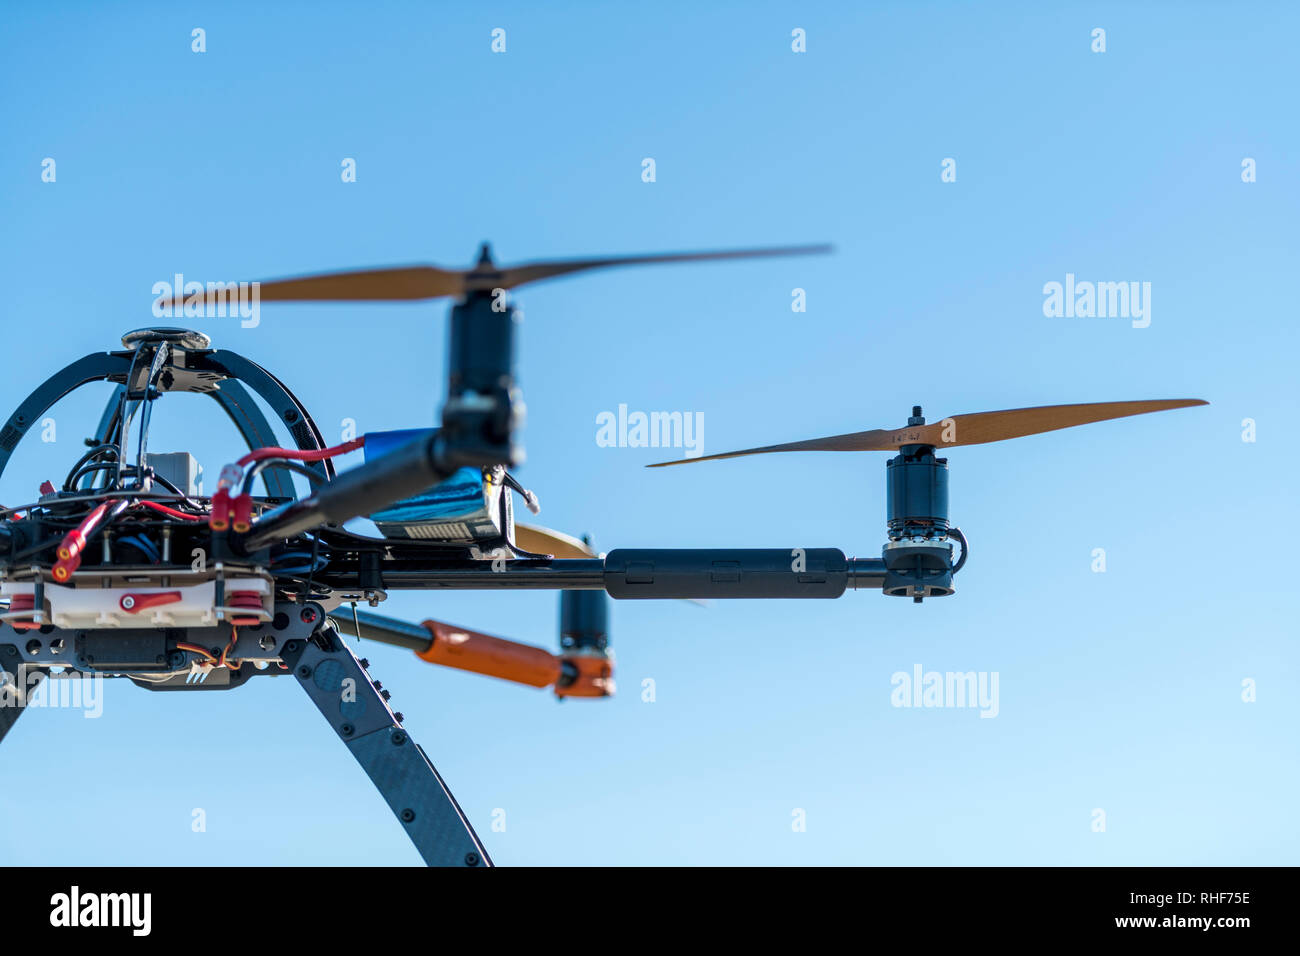 Professional drone ready for a testing flight in sunny day - Stock Image